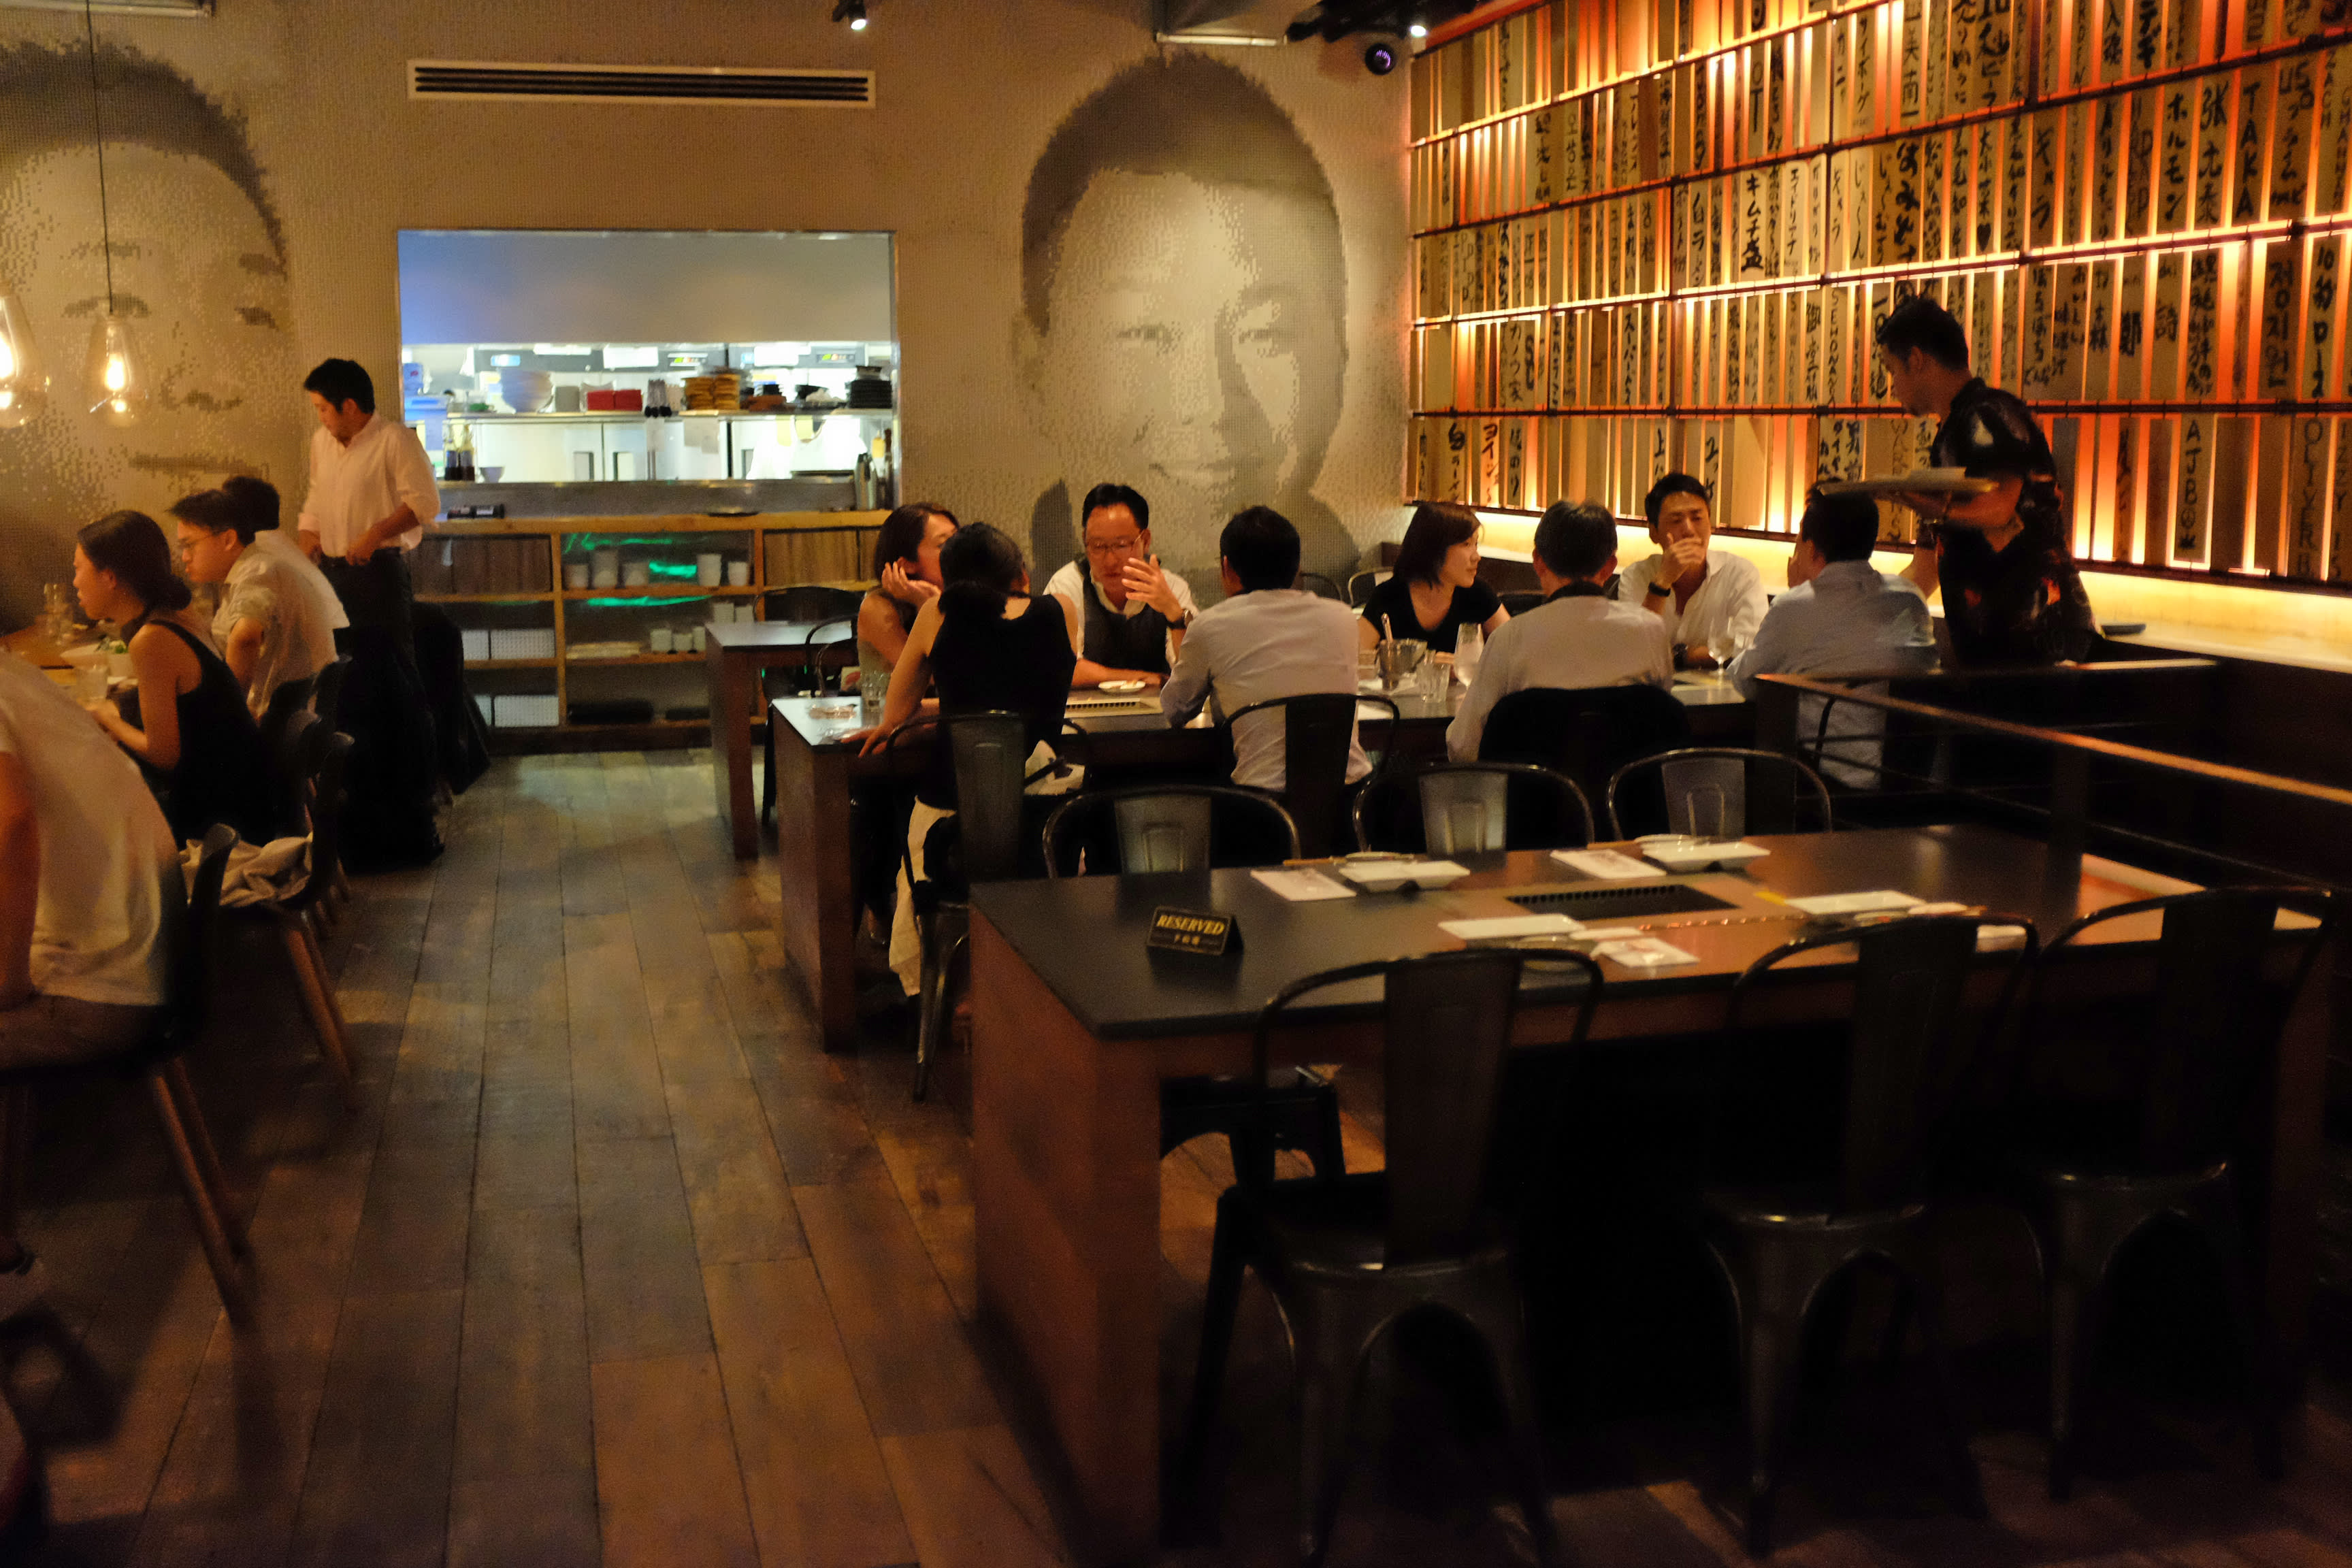 Japanese Restaurants Feed Their Global Ambitions With New York Branches